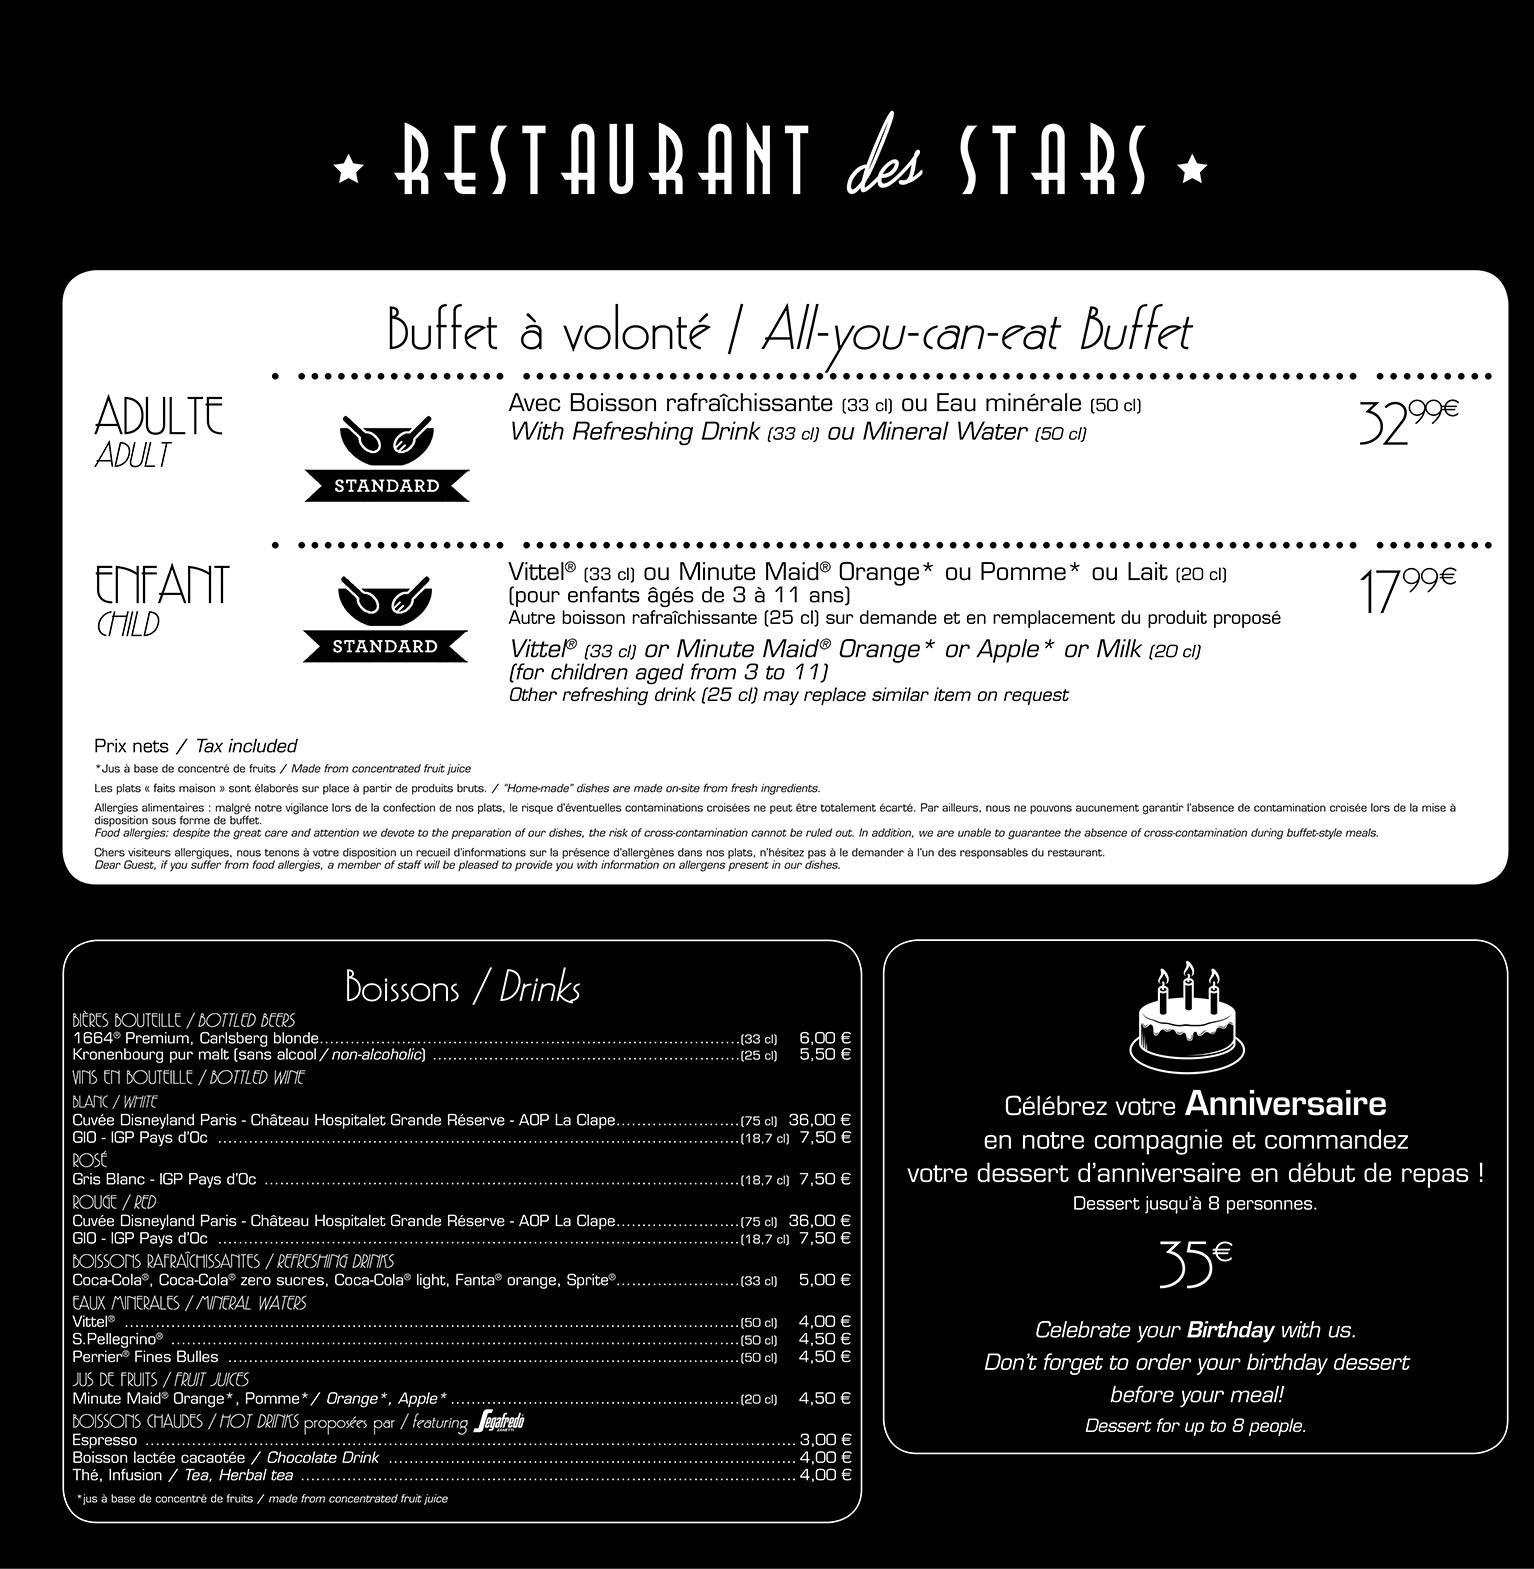 The Restaurant des Stars menu at Disneyland Paris